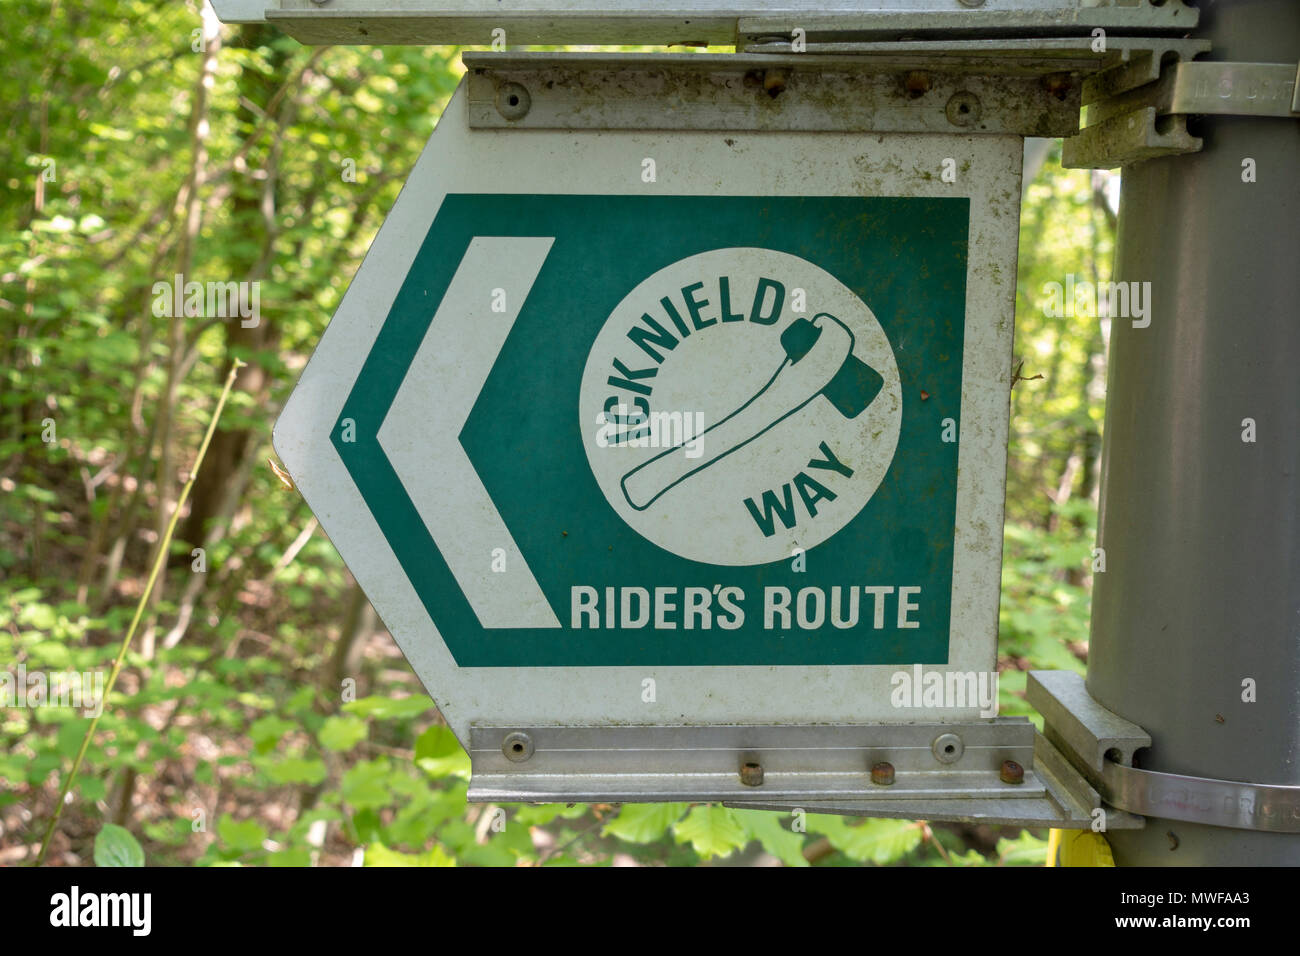 Icknield Way ricer's route sign on a post in the Chilterns area of natural beauty, UK - Stock Image